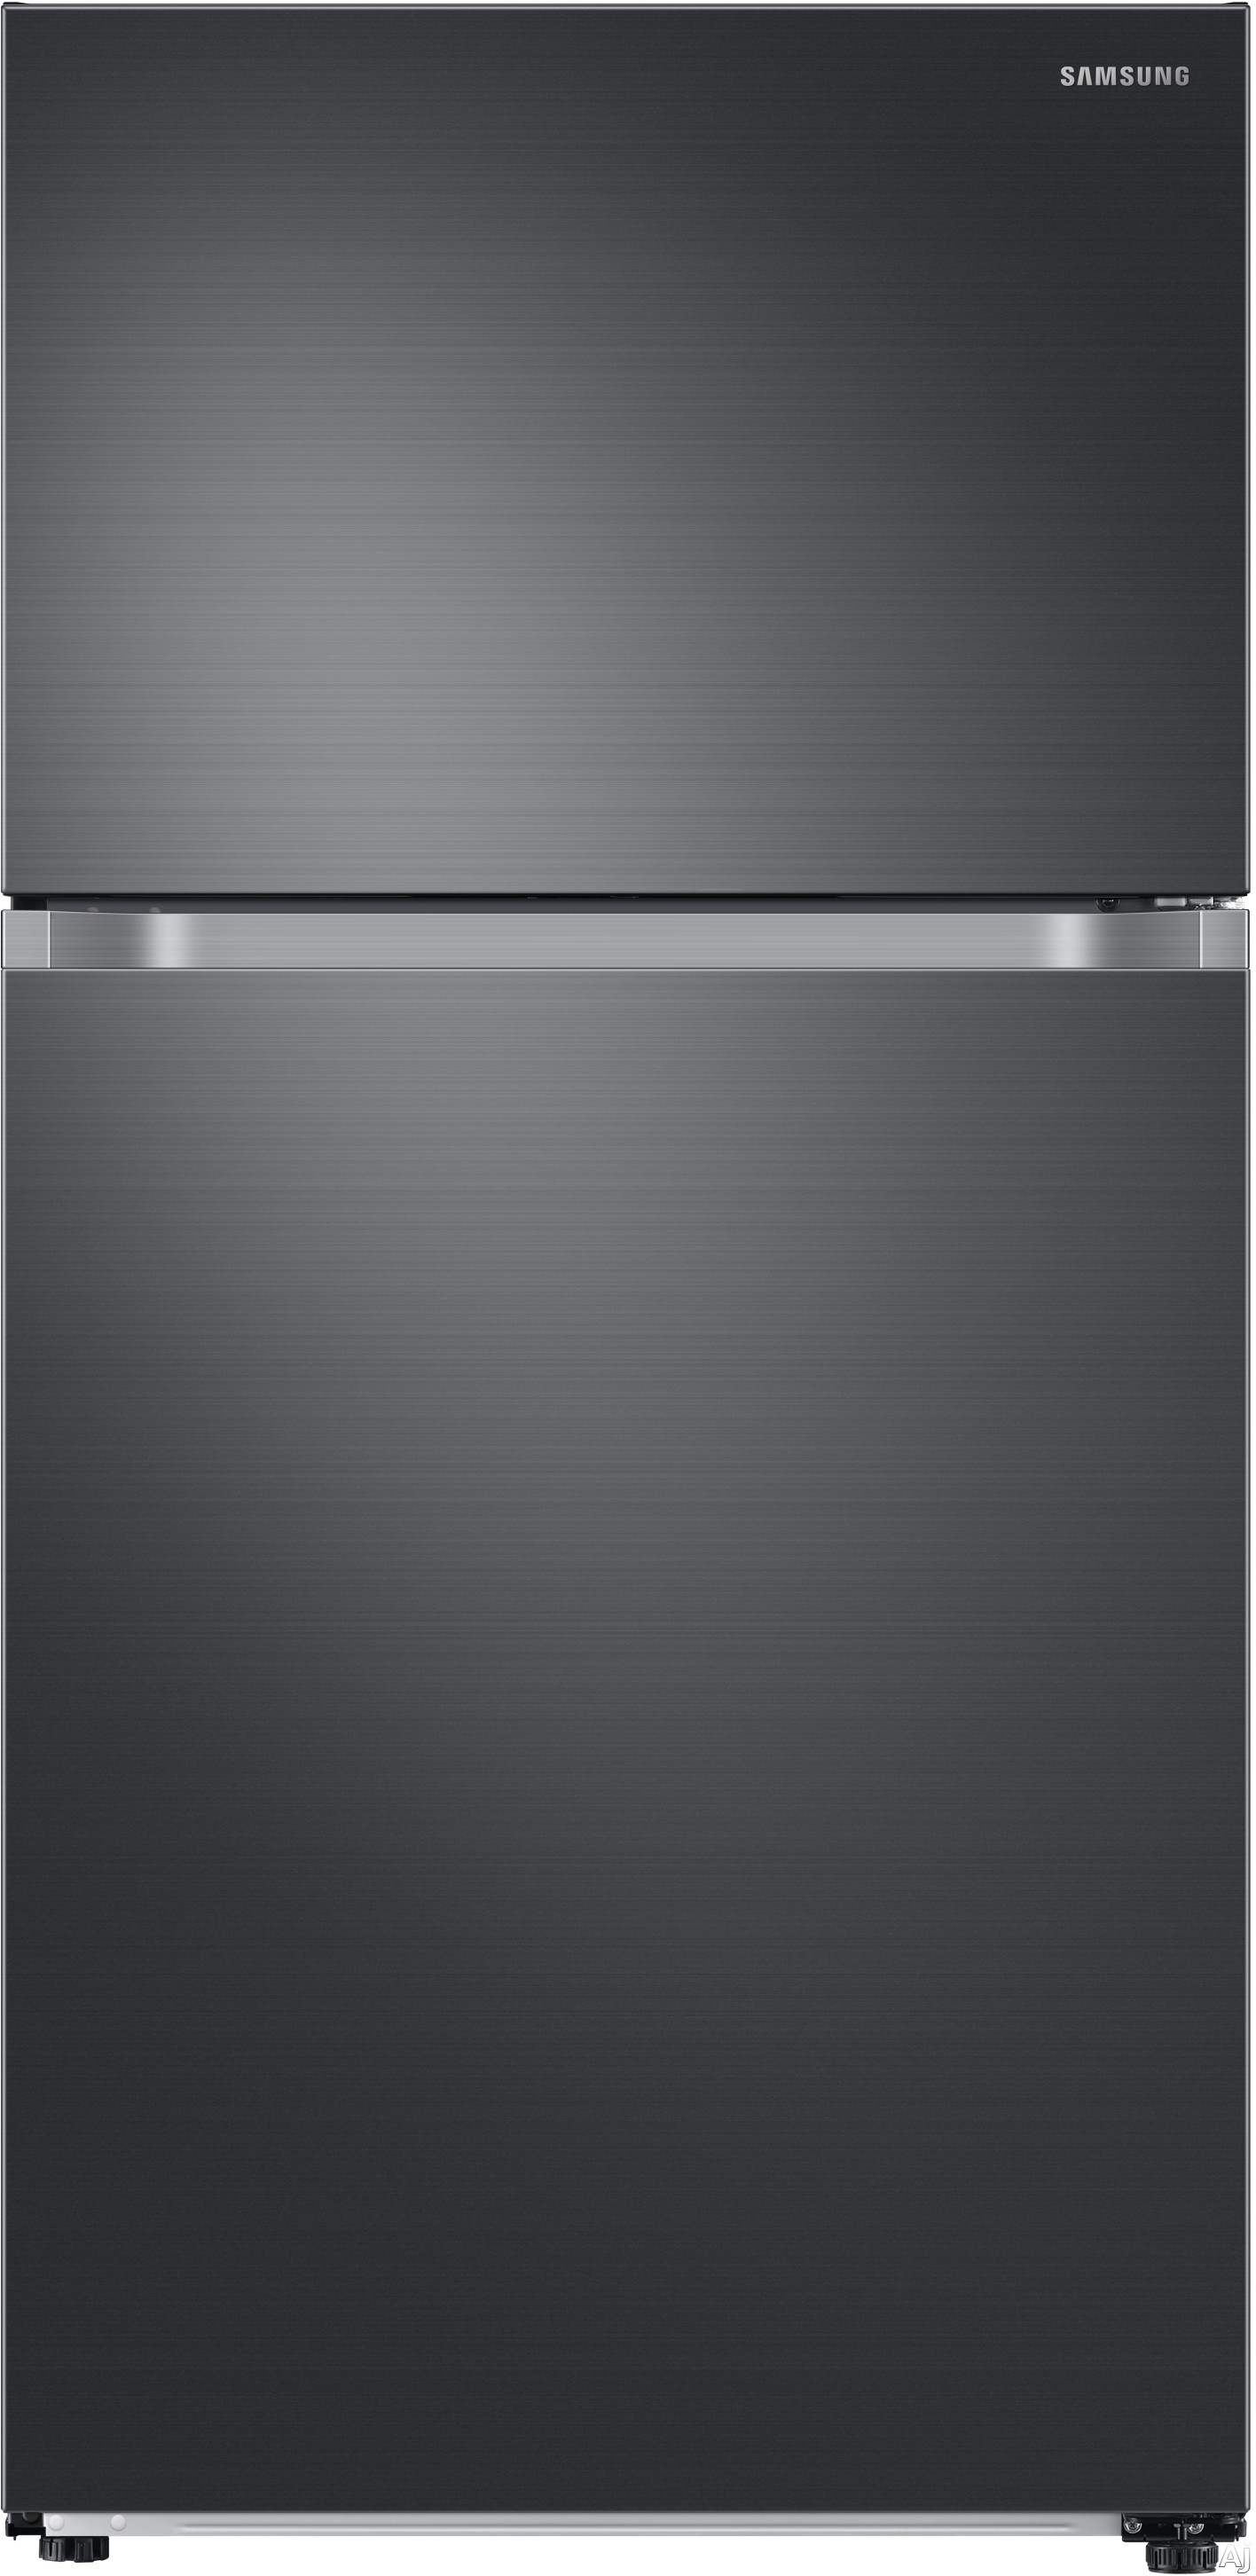 Samsung RT21M6213X 33 Inch Freestanding Top Mount Freezer Refrigerator with Twin Cooling Plus™, FlexZone™, Slide & Reach Pantry, Reversible Door, 21 cu. ft. Capacity, Energy Star® Rated and Star-K Certified